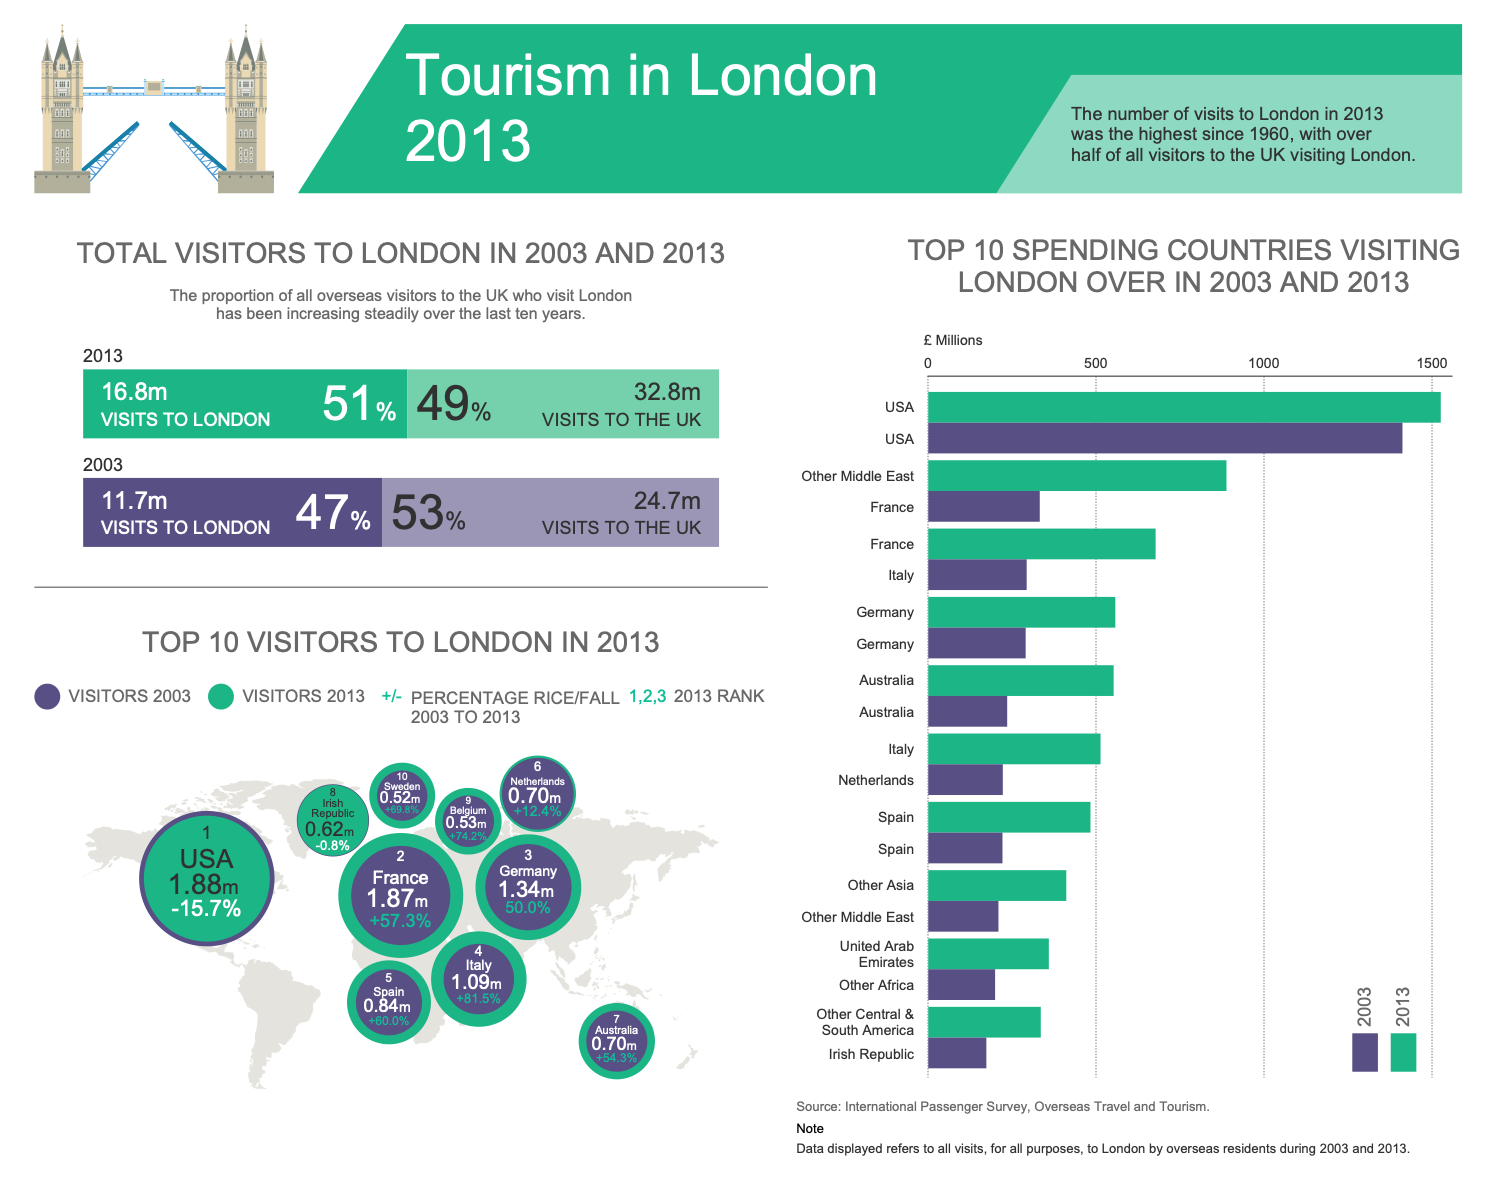 Tourism in London 2013